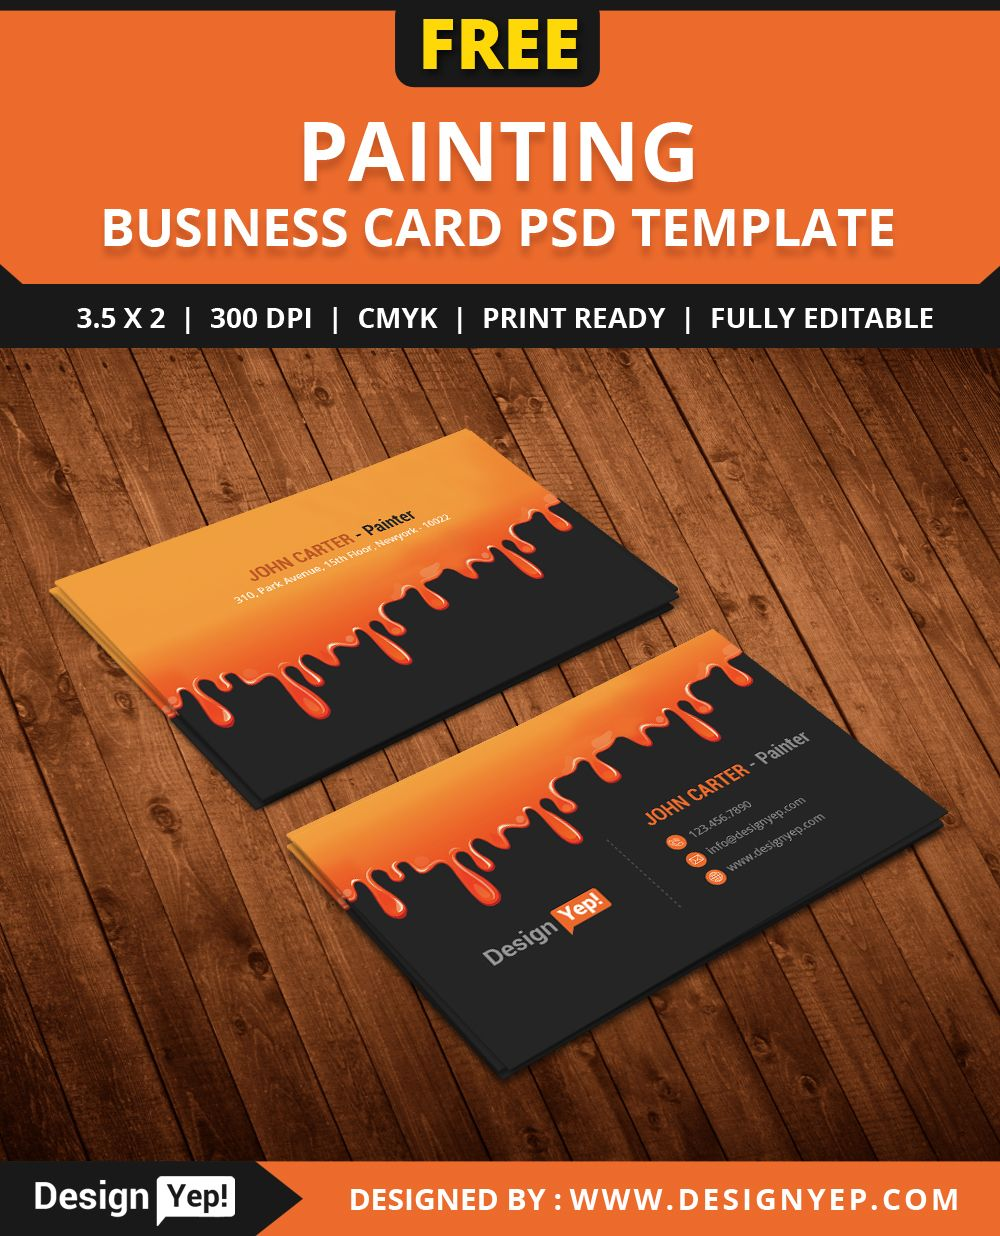 Free painting business card psd template free business card free painting business card psd template colourmoves